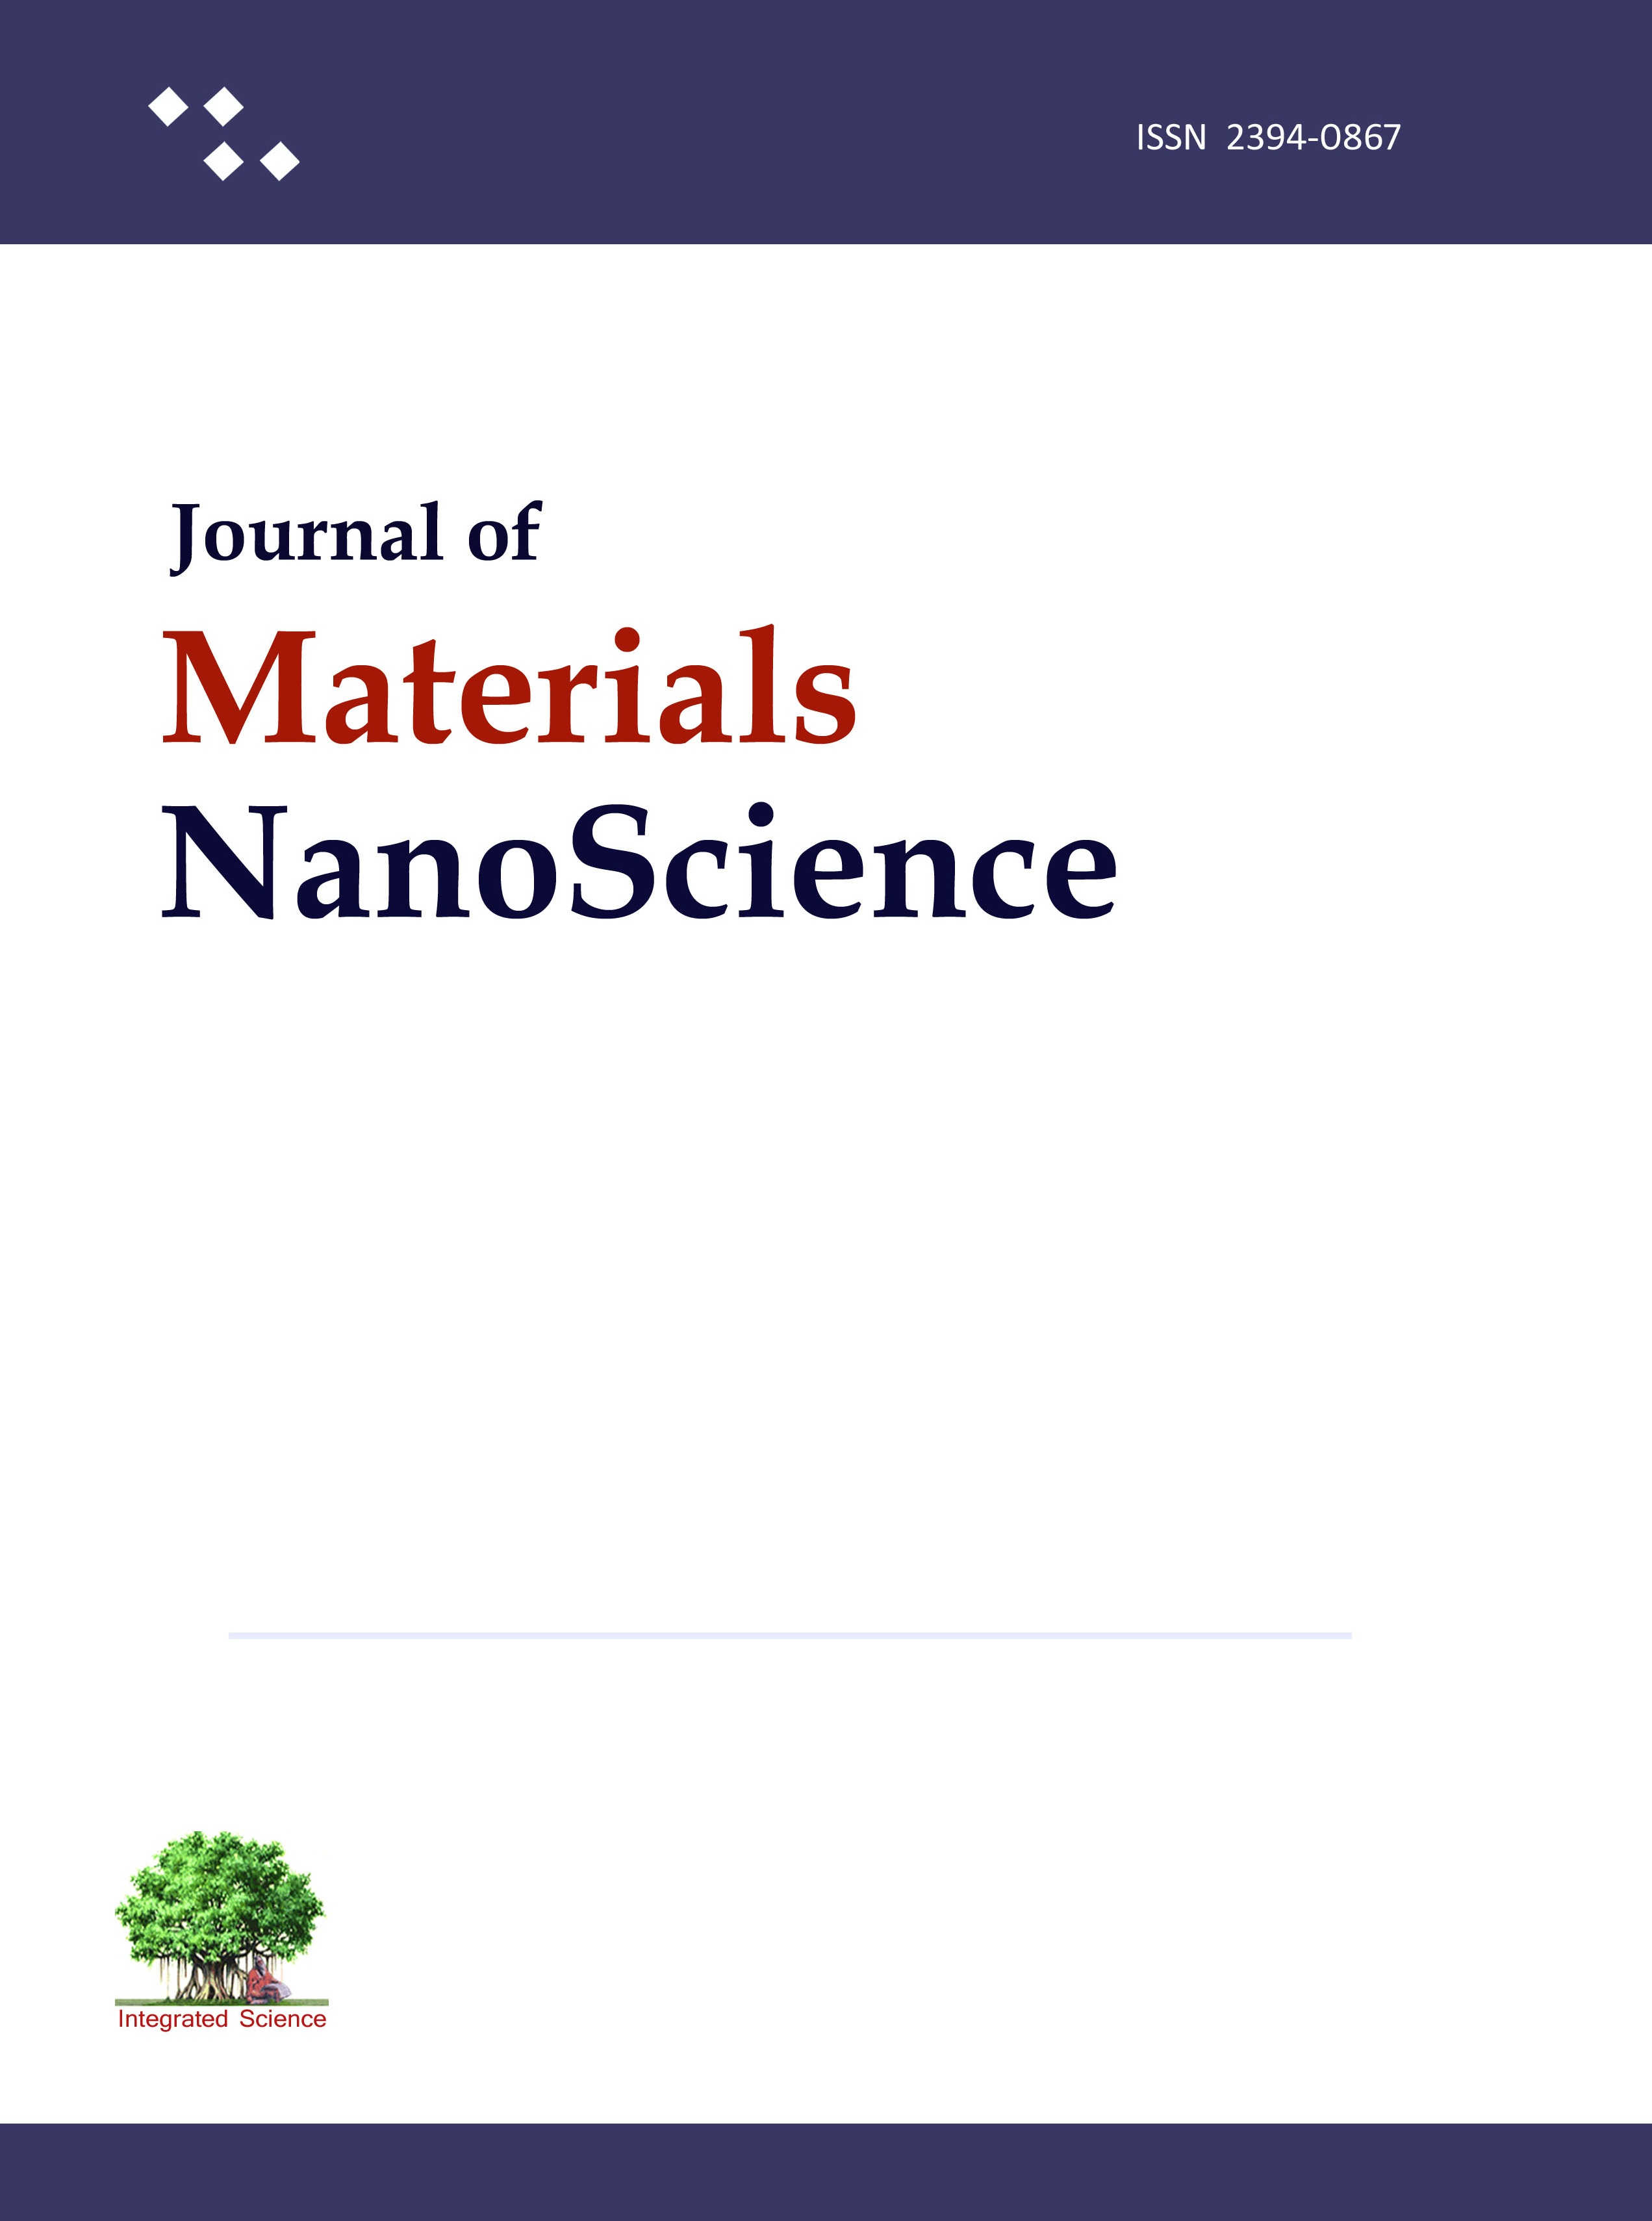 Journal of Nanoscience